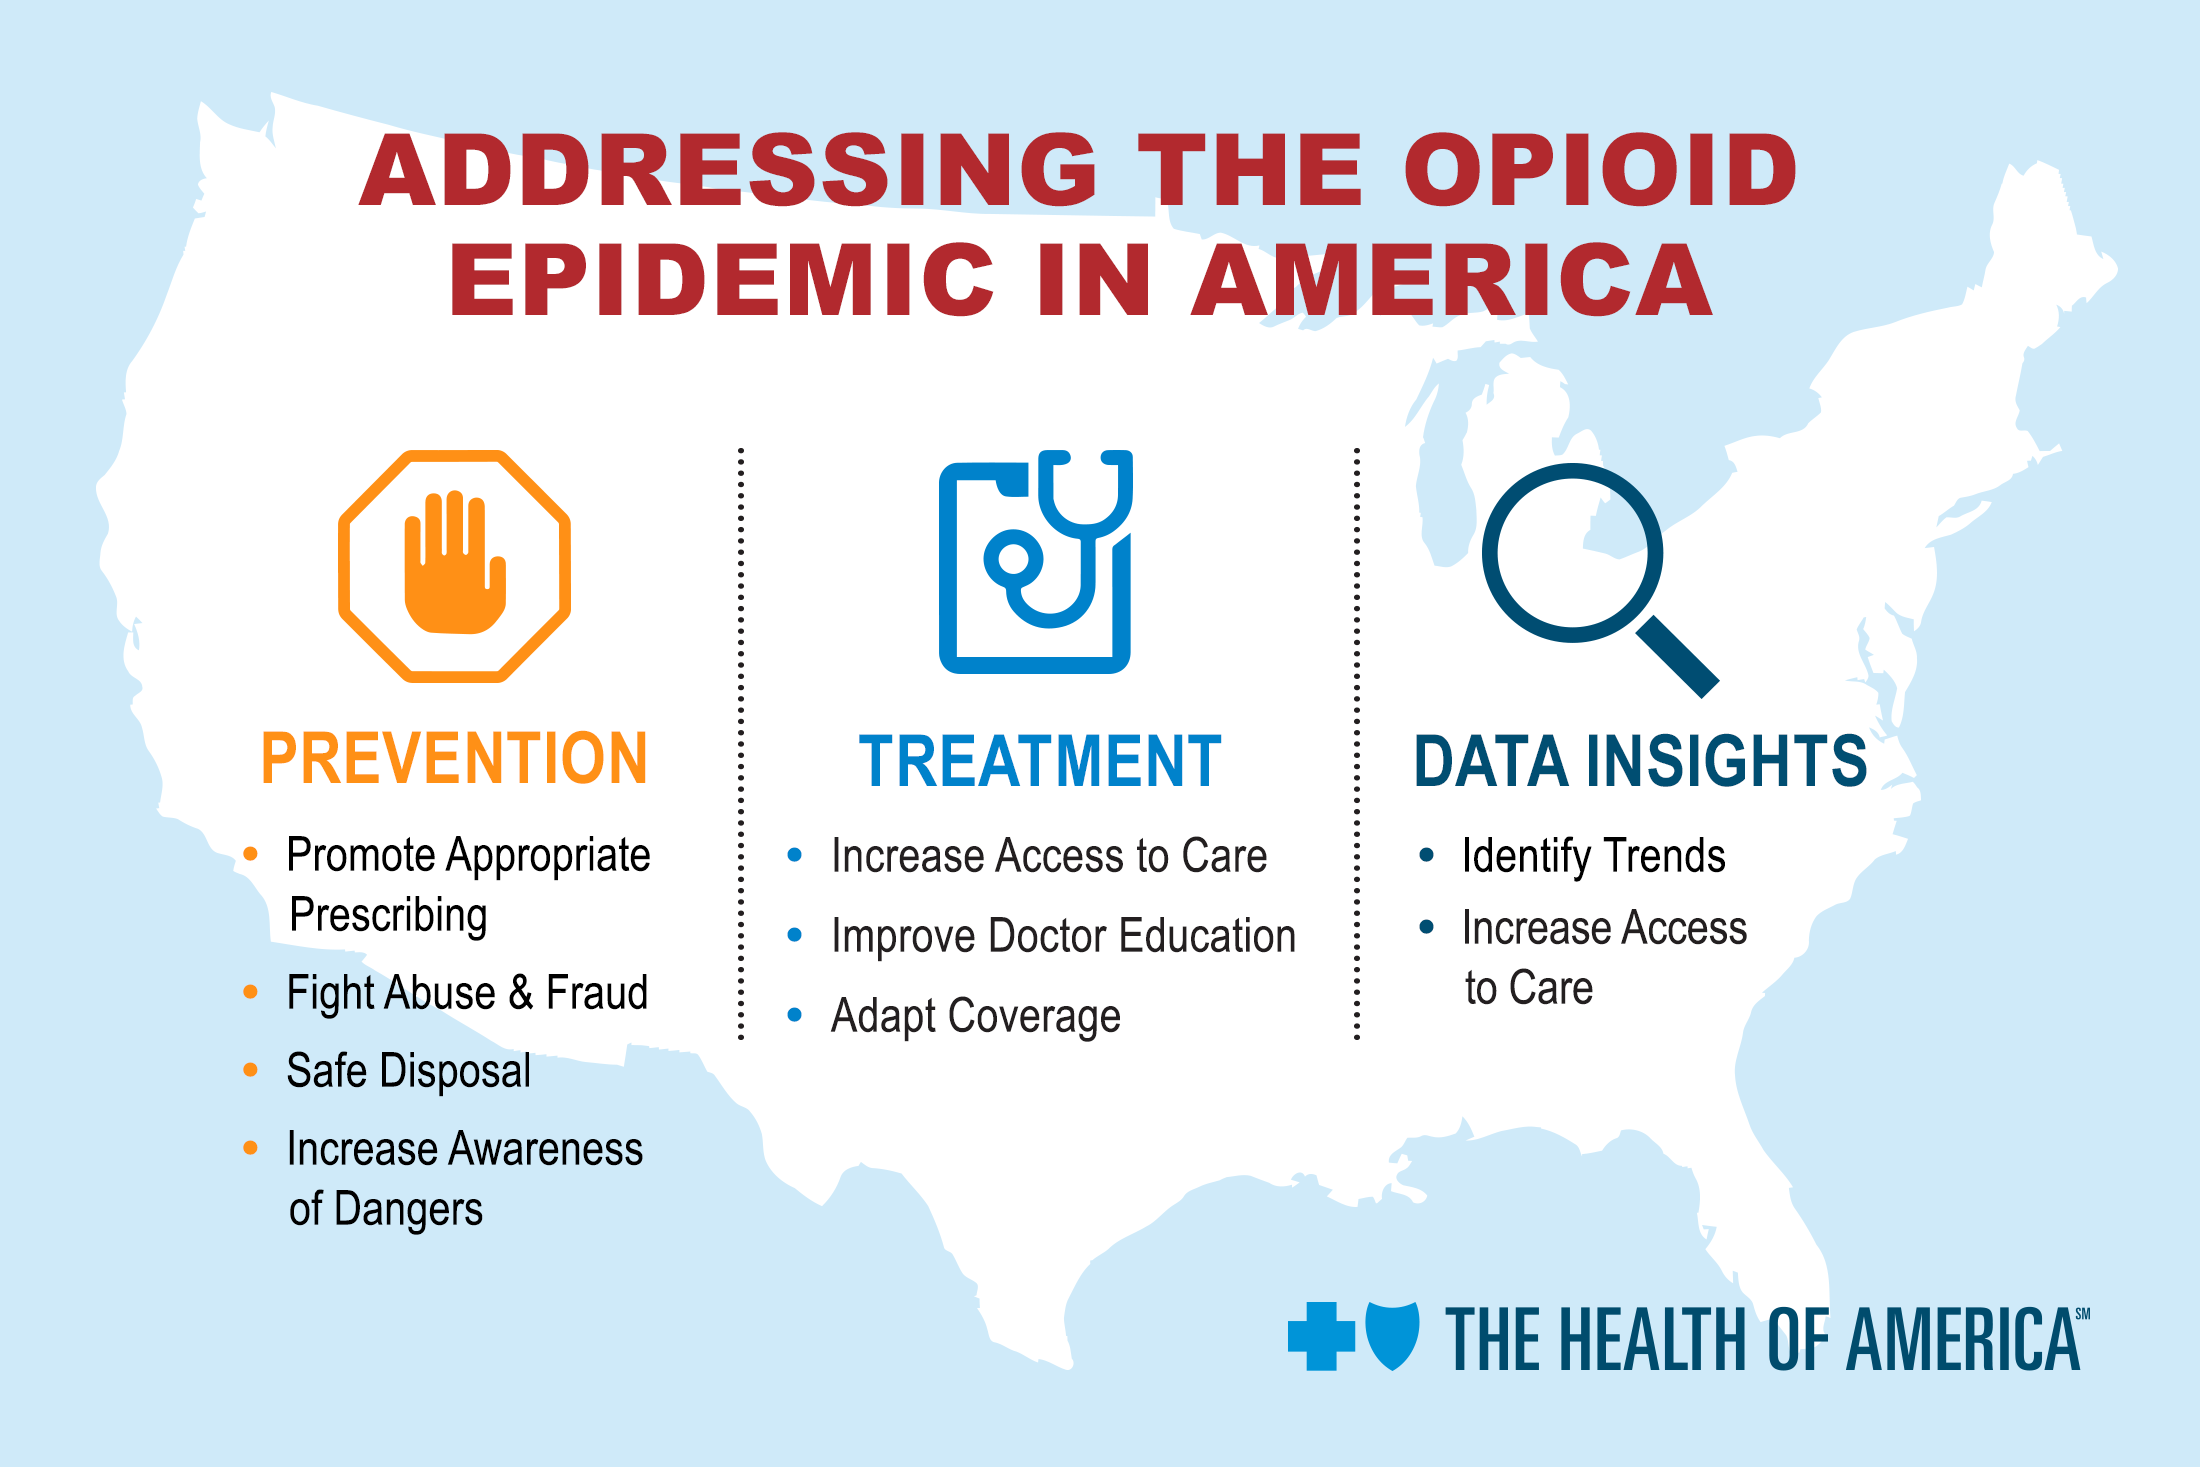 Addressing the opioid epidemic in America